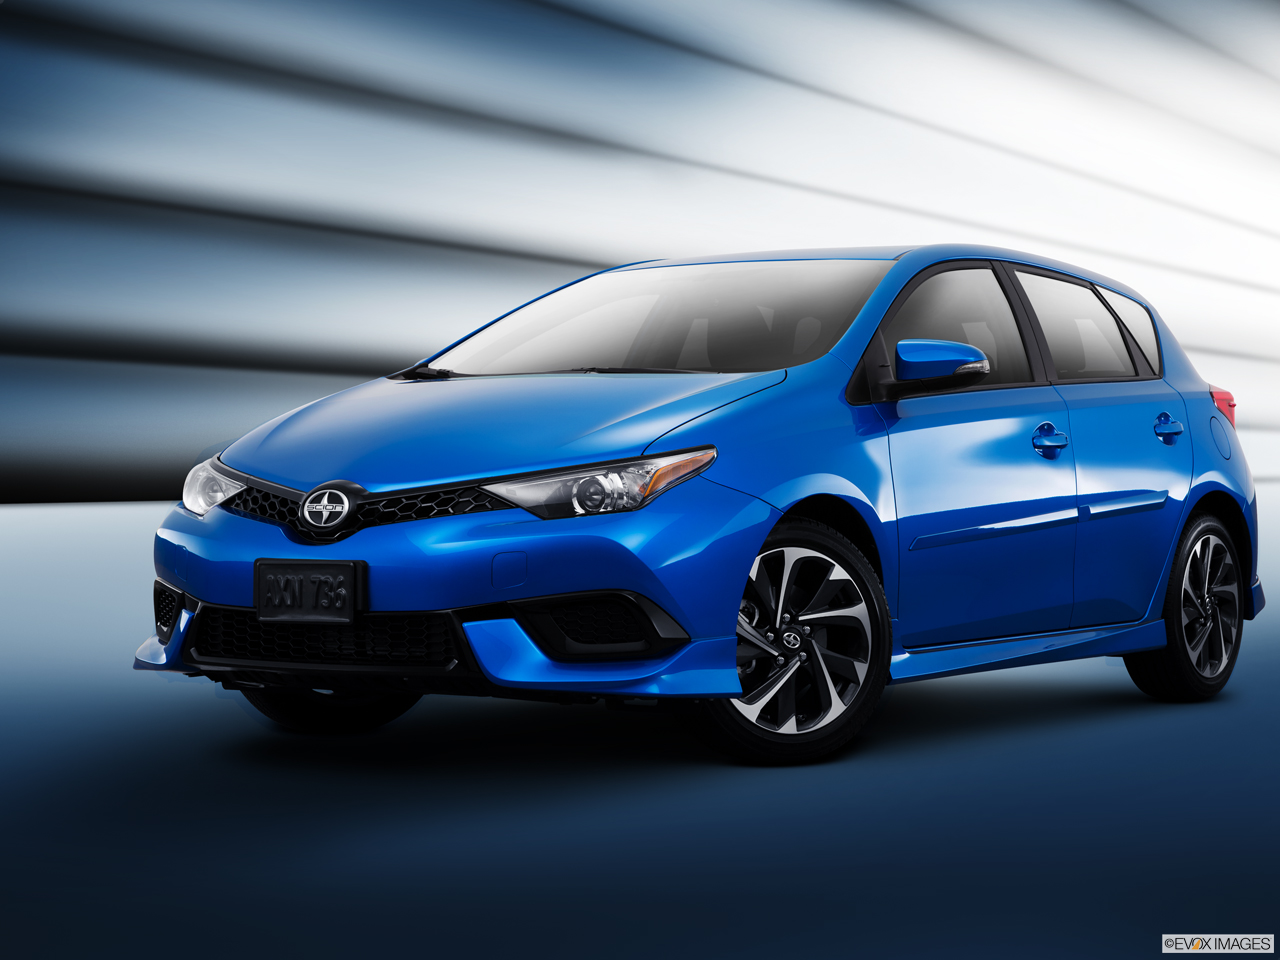 Test Drive A 2016 Scion iM At Roseville Toyota Serving ...